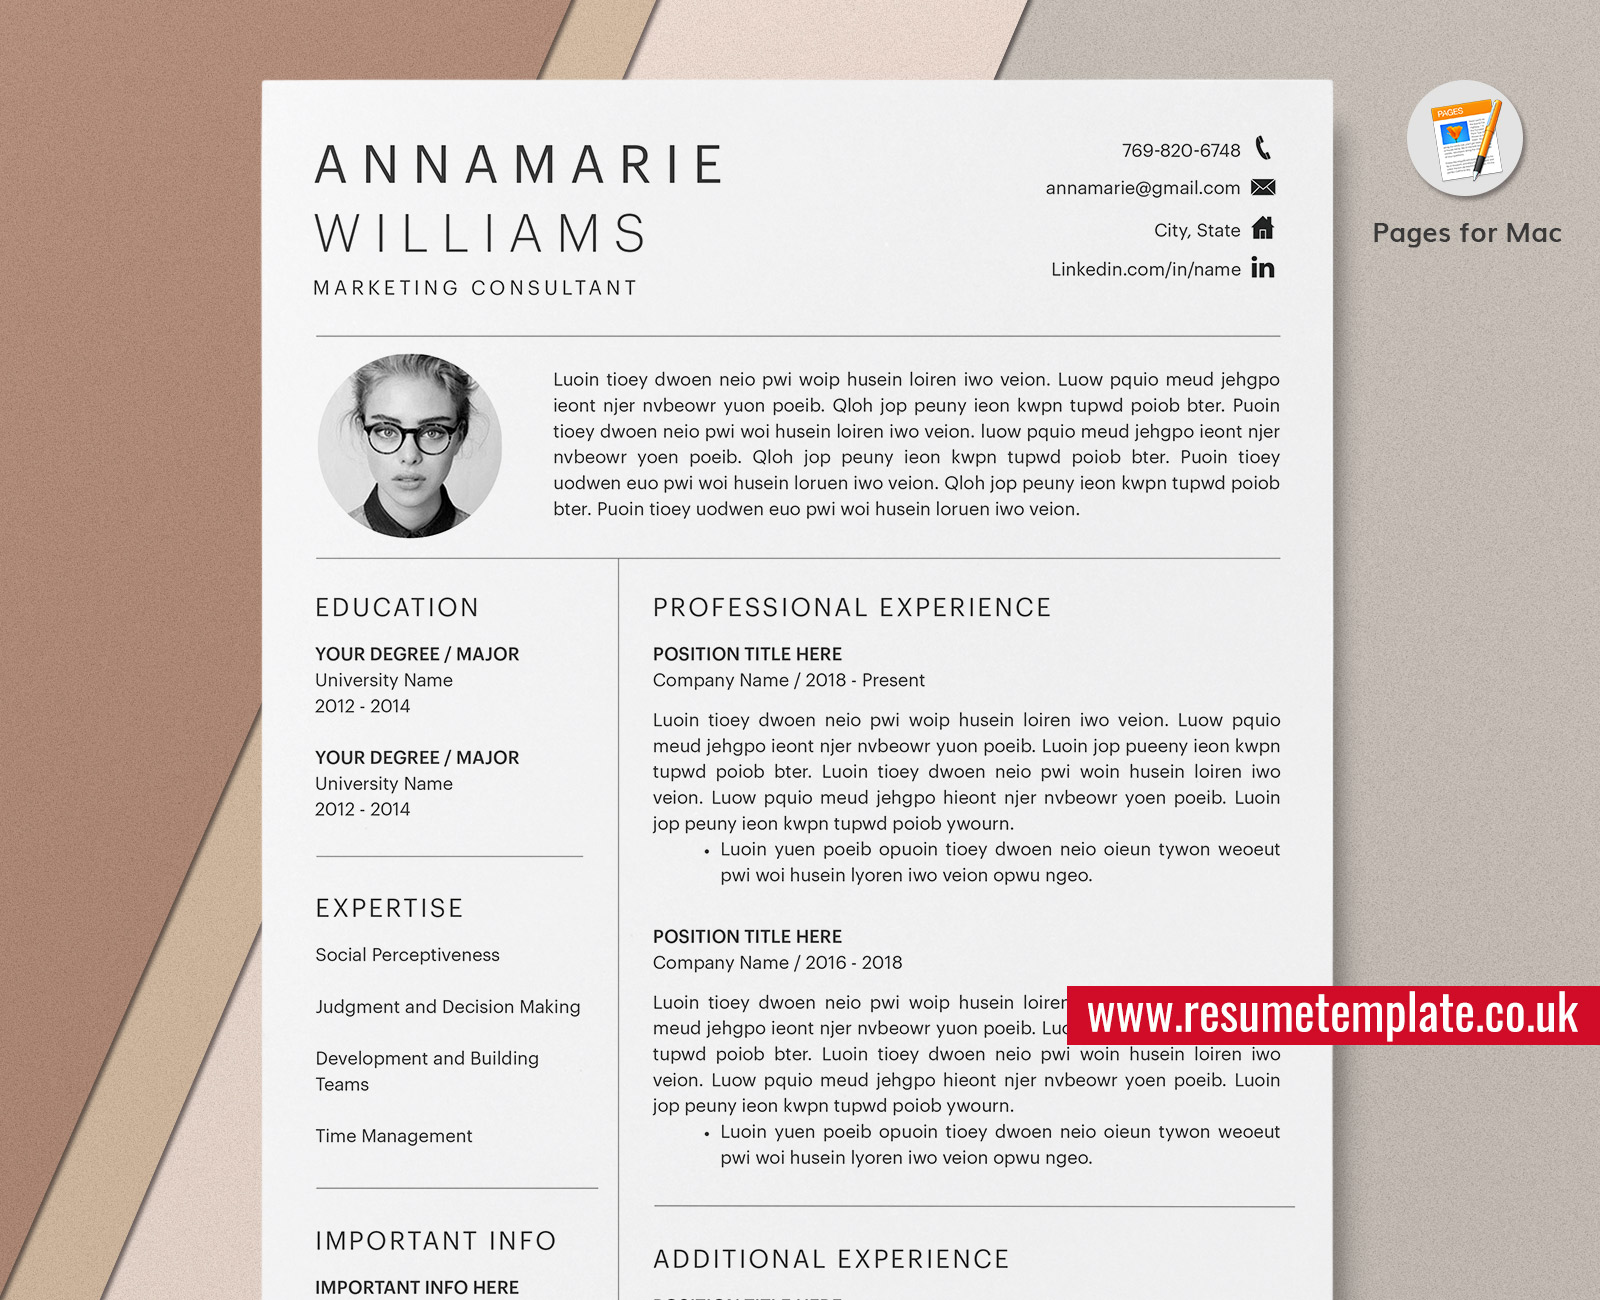 • administer patient medicine and treatment. Mac Pages Minimalist Resume Cv Template Cover Letter Curriculum Vitae Professional Cv Template Design Modern Resume For Job Application Instant Download Resumetemplate Co Uk